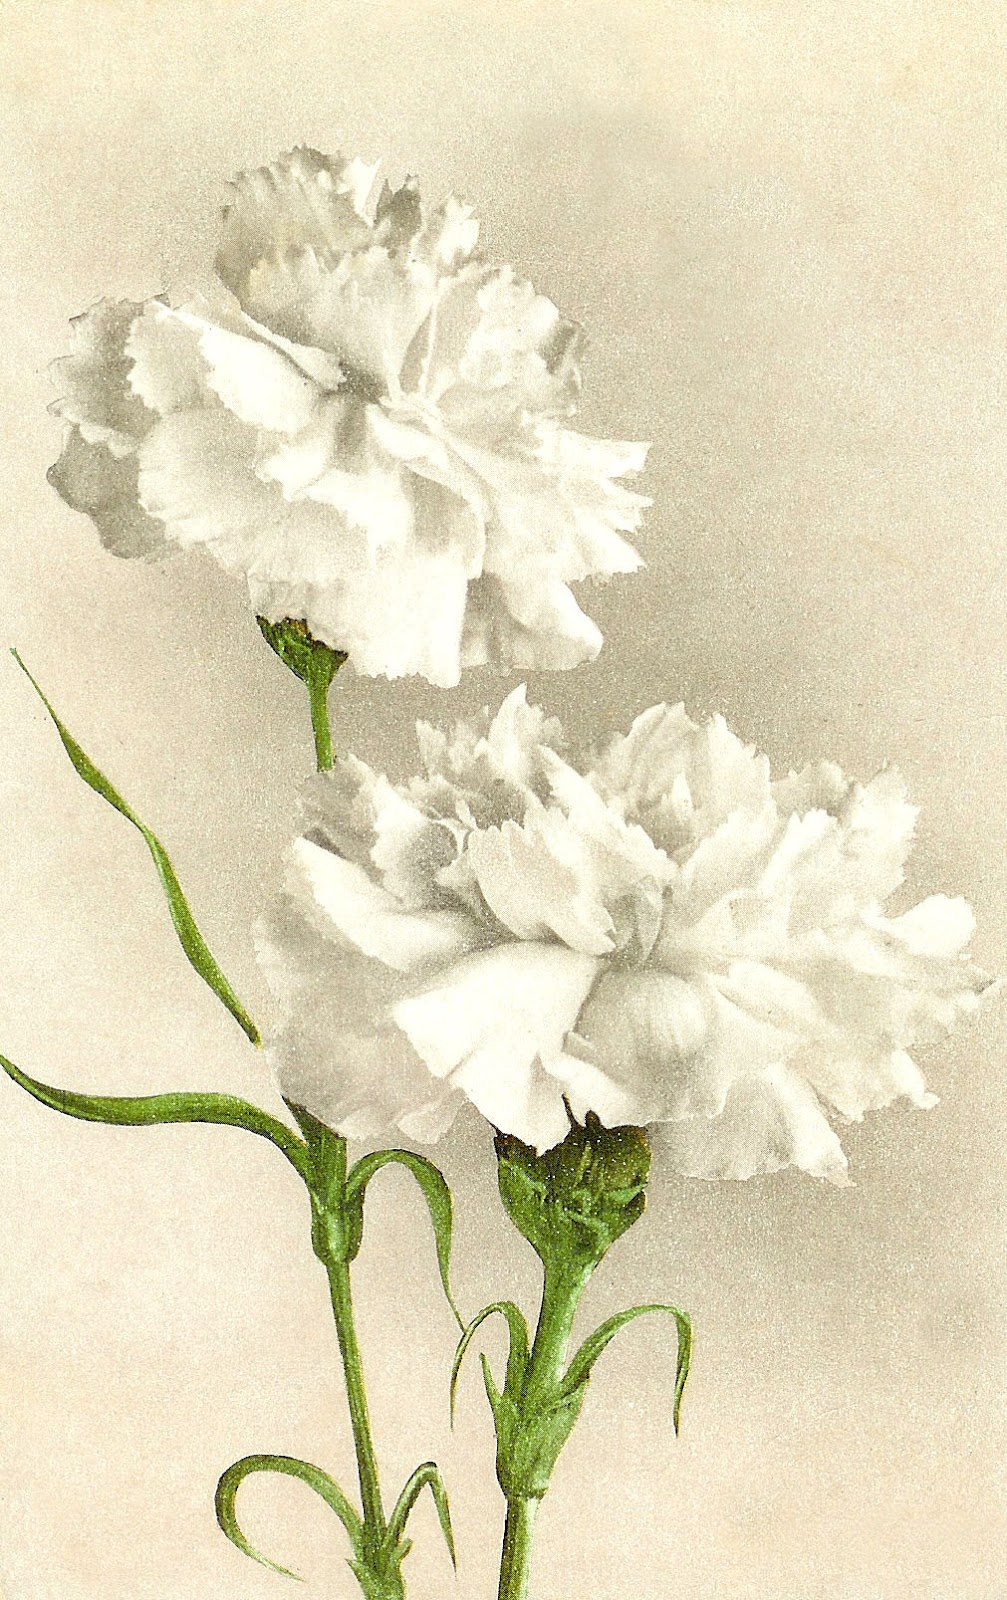 Antique Image: Vintage Flower Clip Art: White Carnation on.